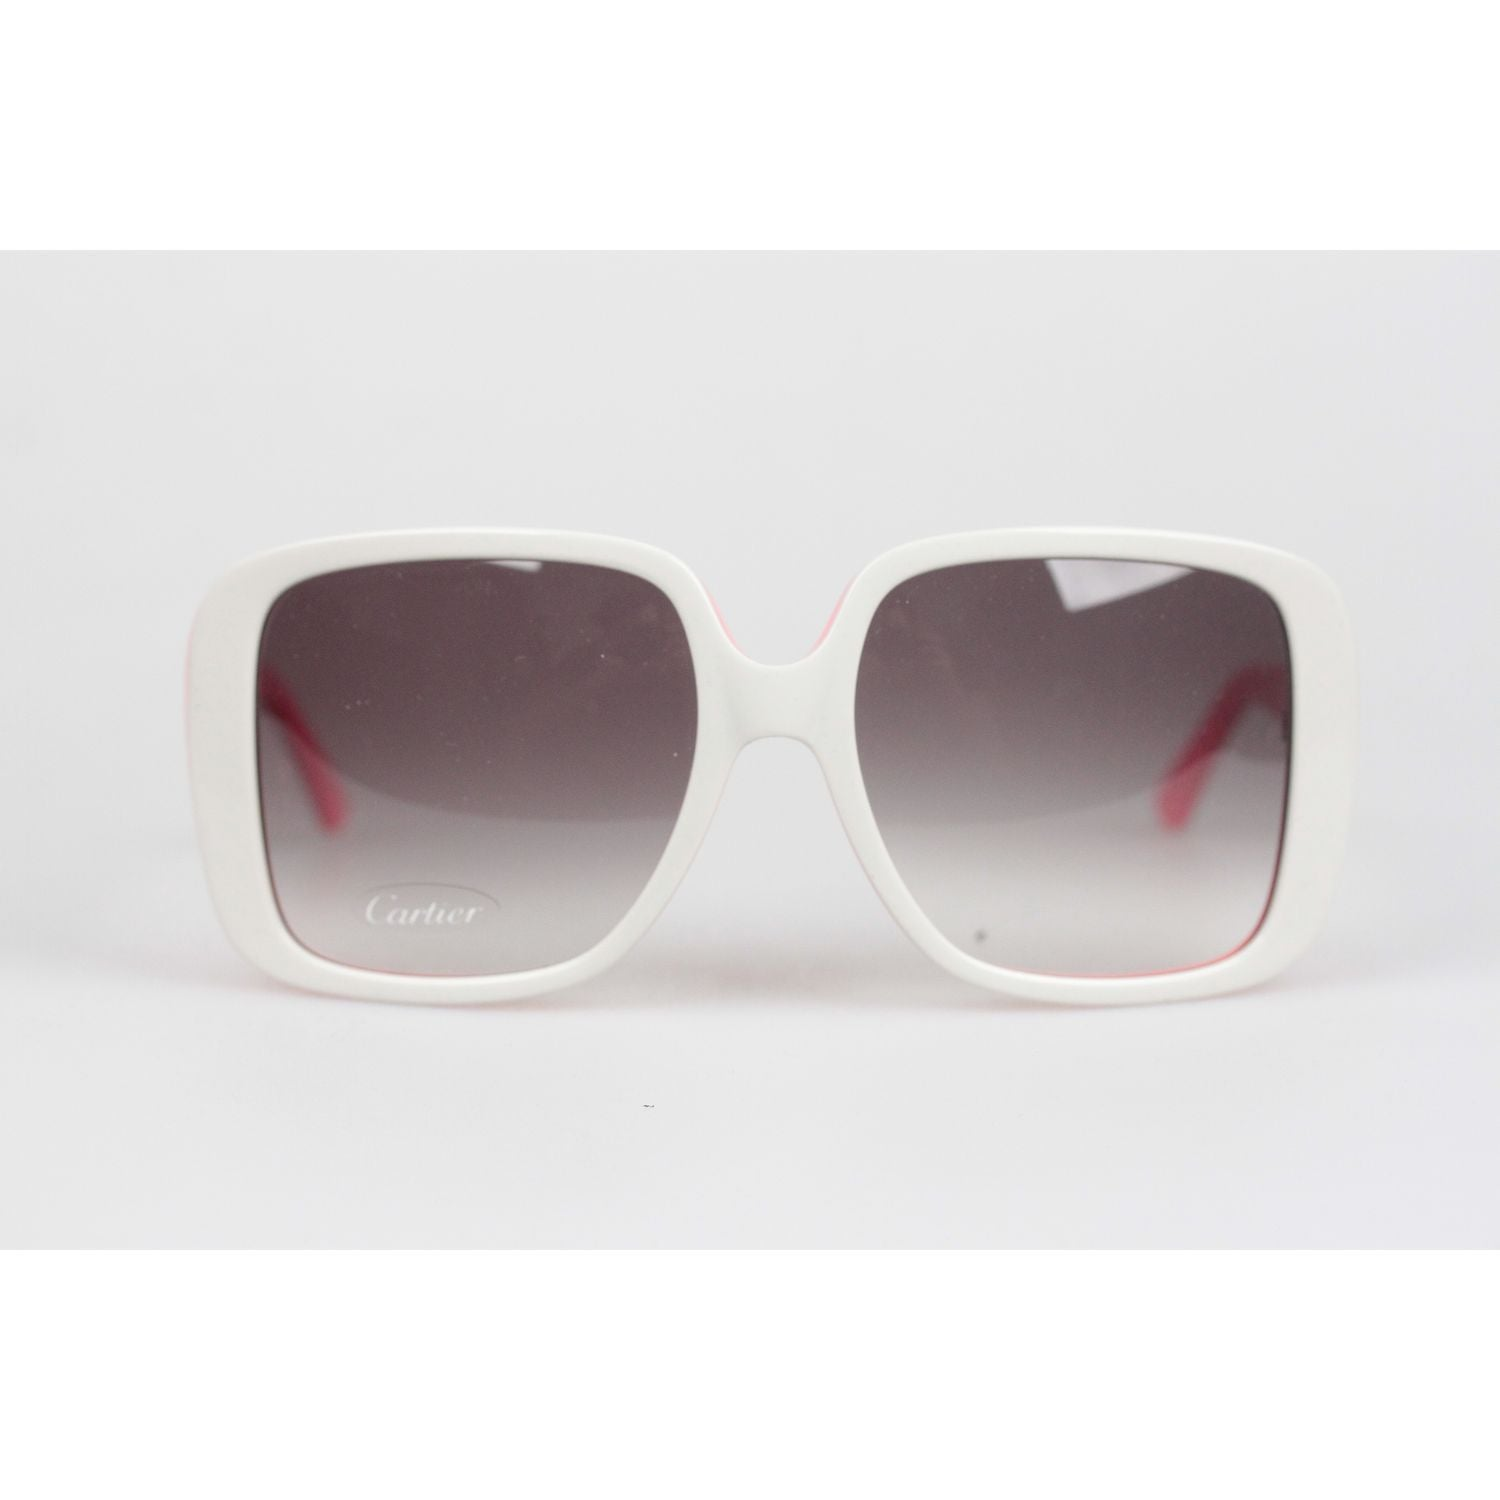 b46363818b9 Opherty ciocci cartier paris white oversized sunglasses charlie nos cartier  opherty ciocci jpg 1500x1500 Cartier paris